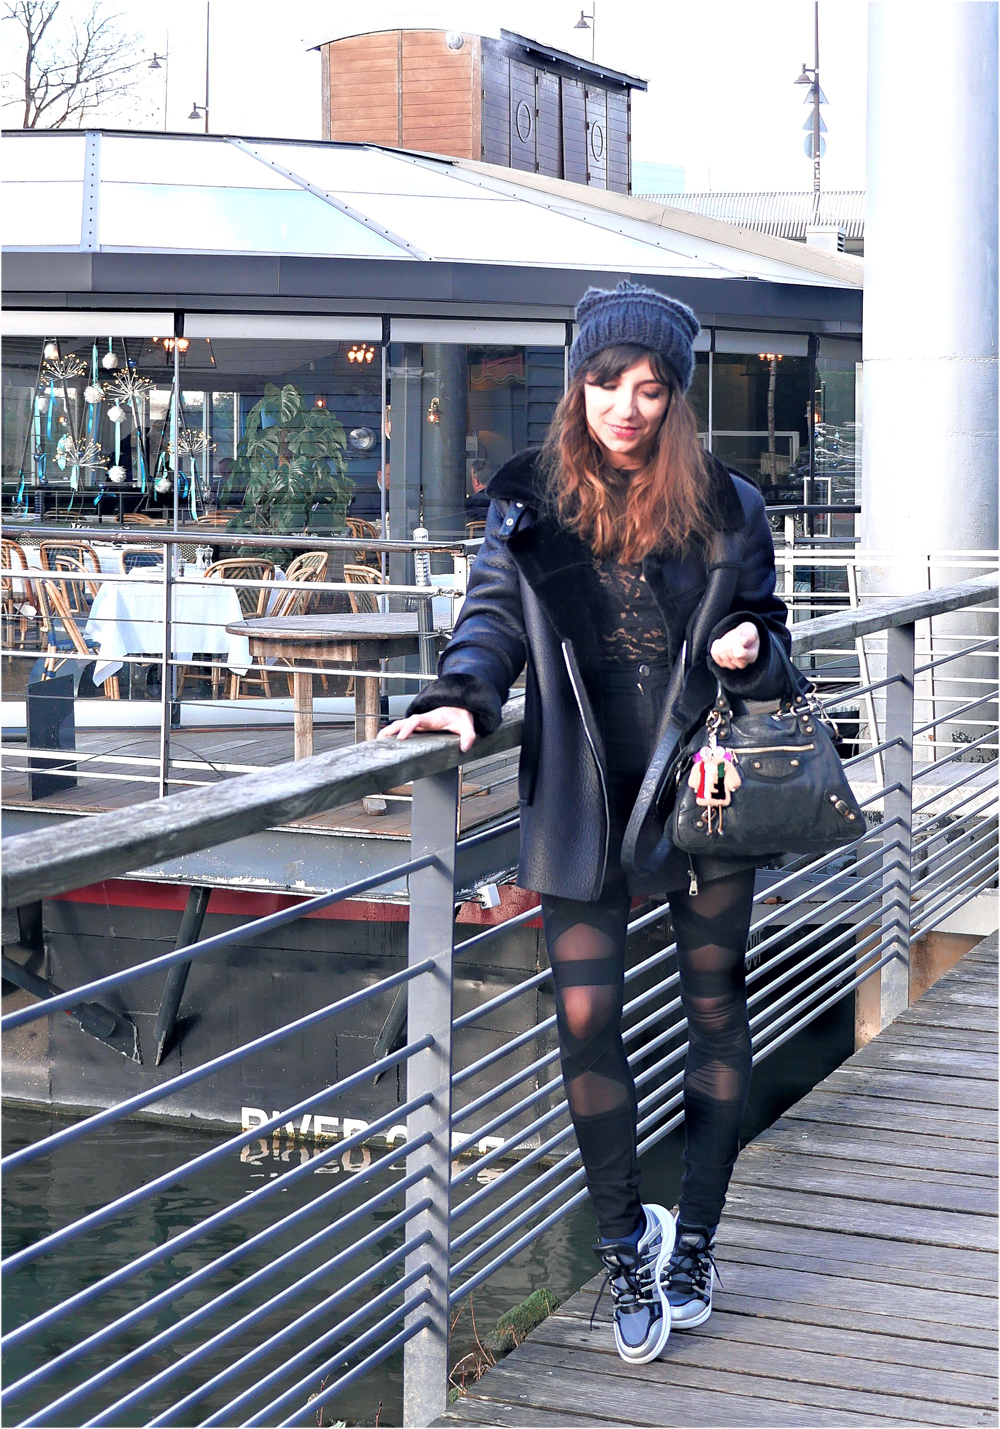 marieluvpink-blog-mode-rivers-cafe-issy-les-moulineaux-7